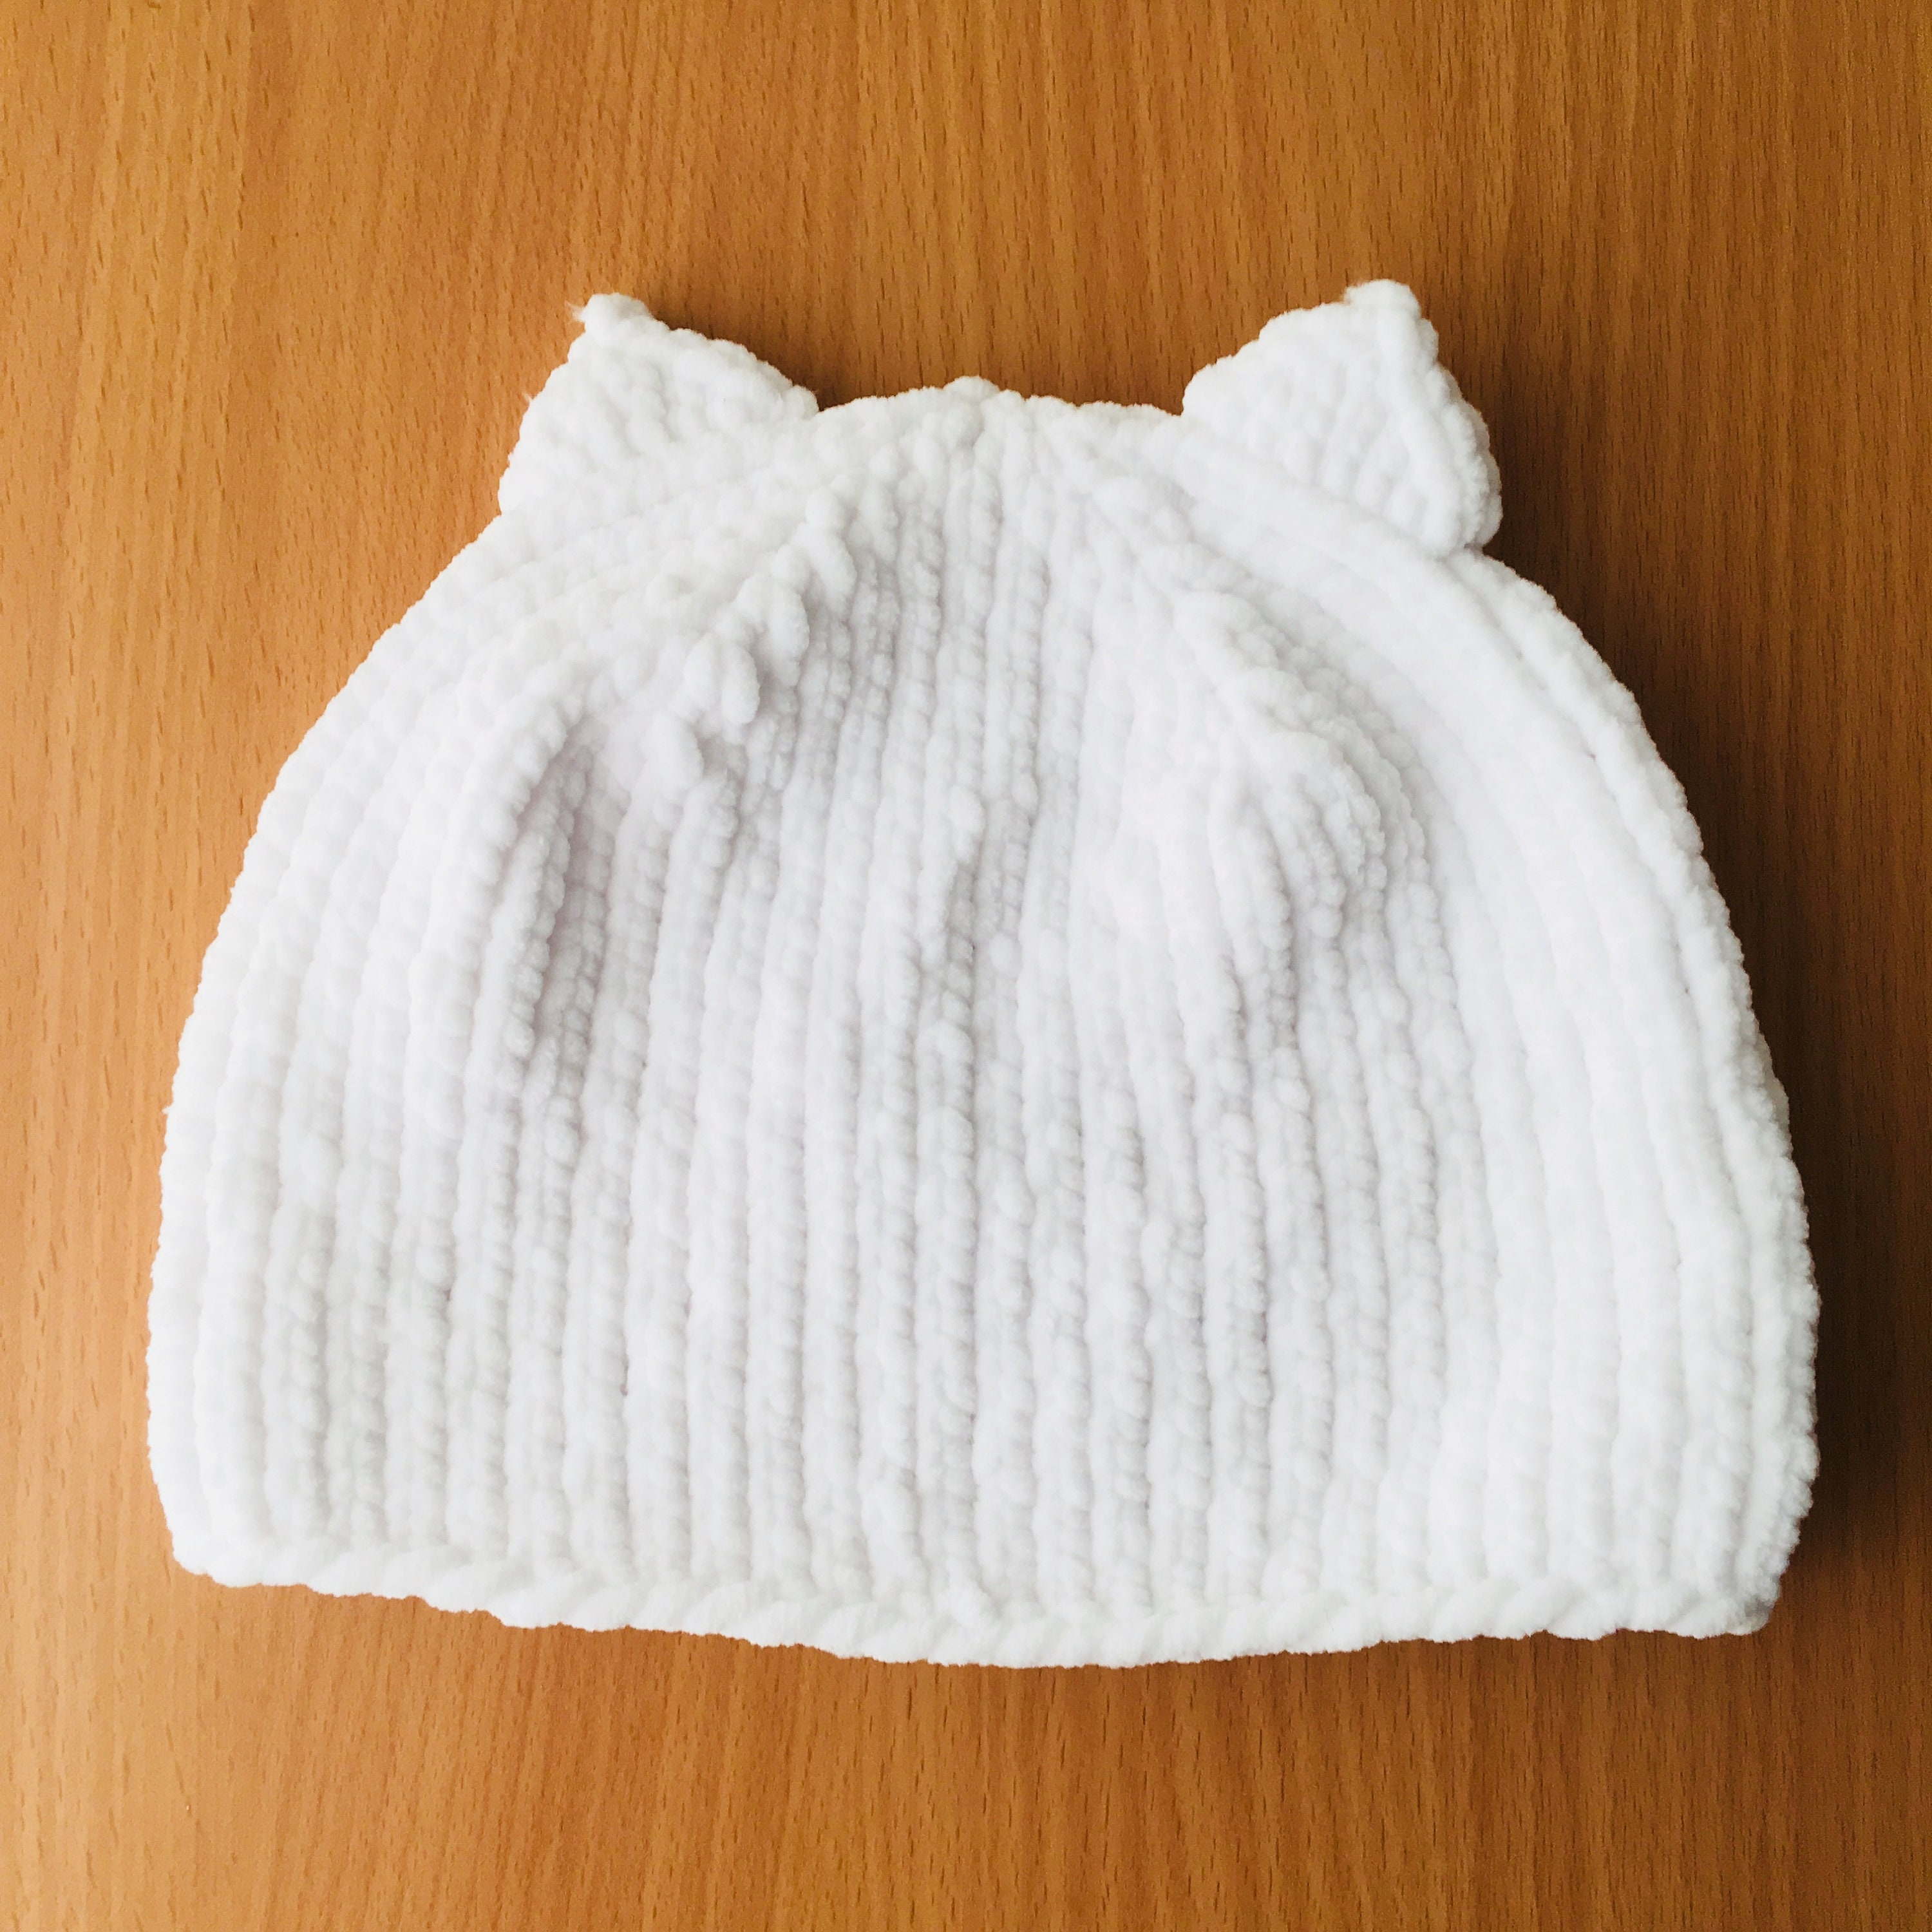 White Baby cat hat Soft knit baby hat hand knitted newborn hat  6c36be8901b